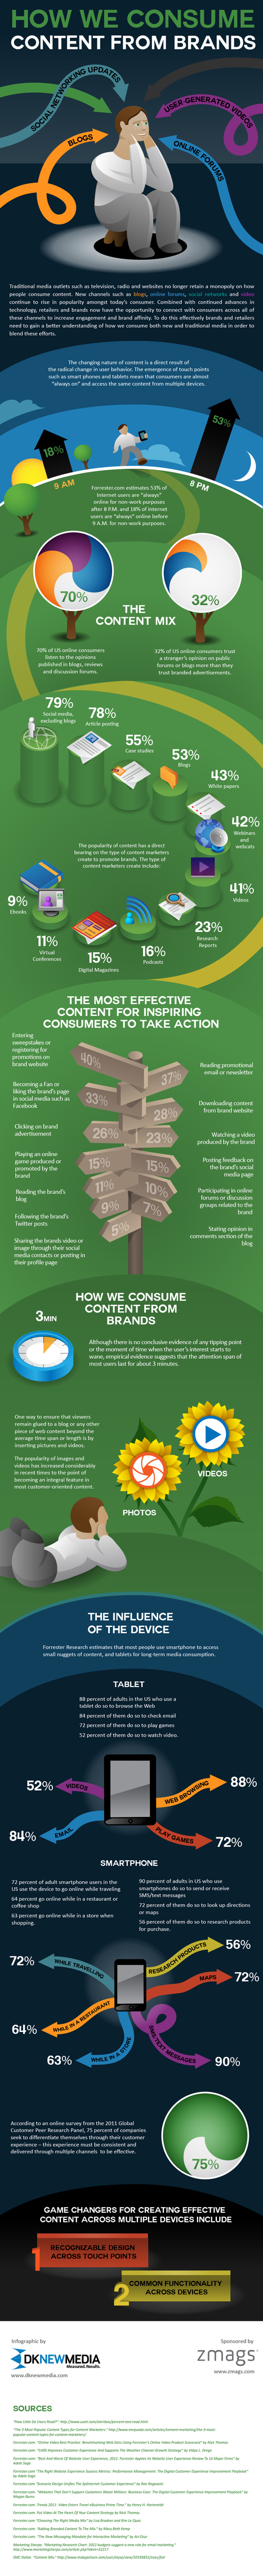 Infographic: How We Consume Content From Brands - Zmags | digitaluz | Scoop.it